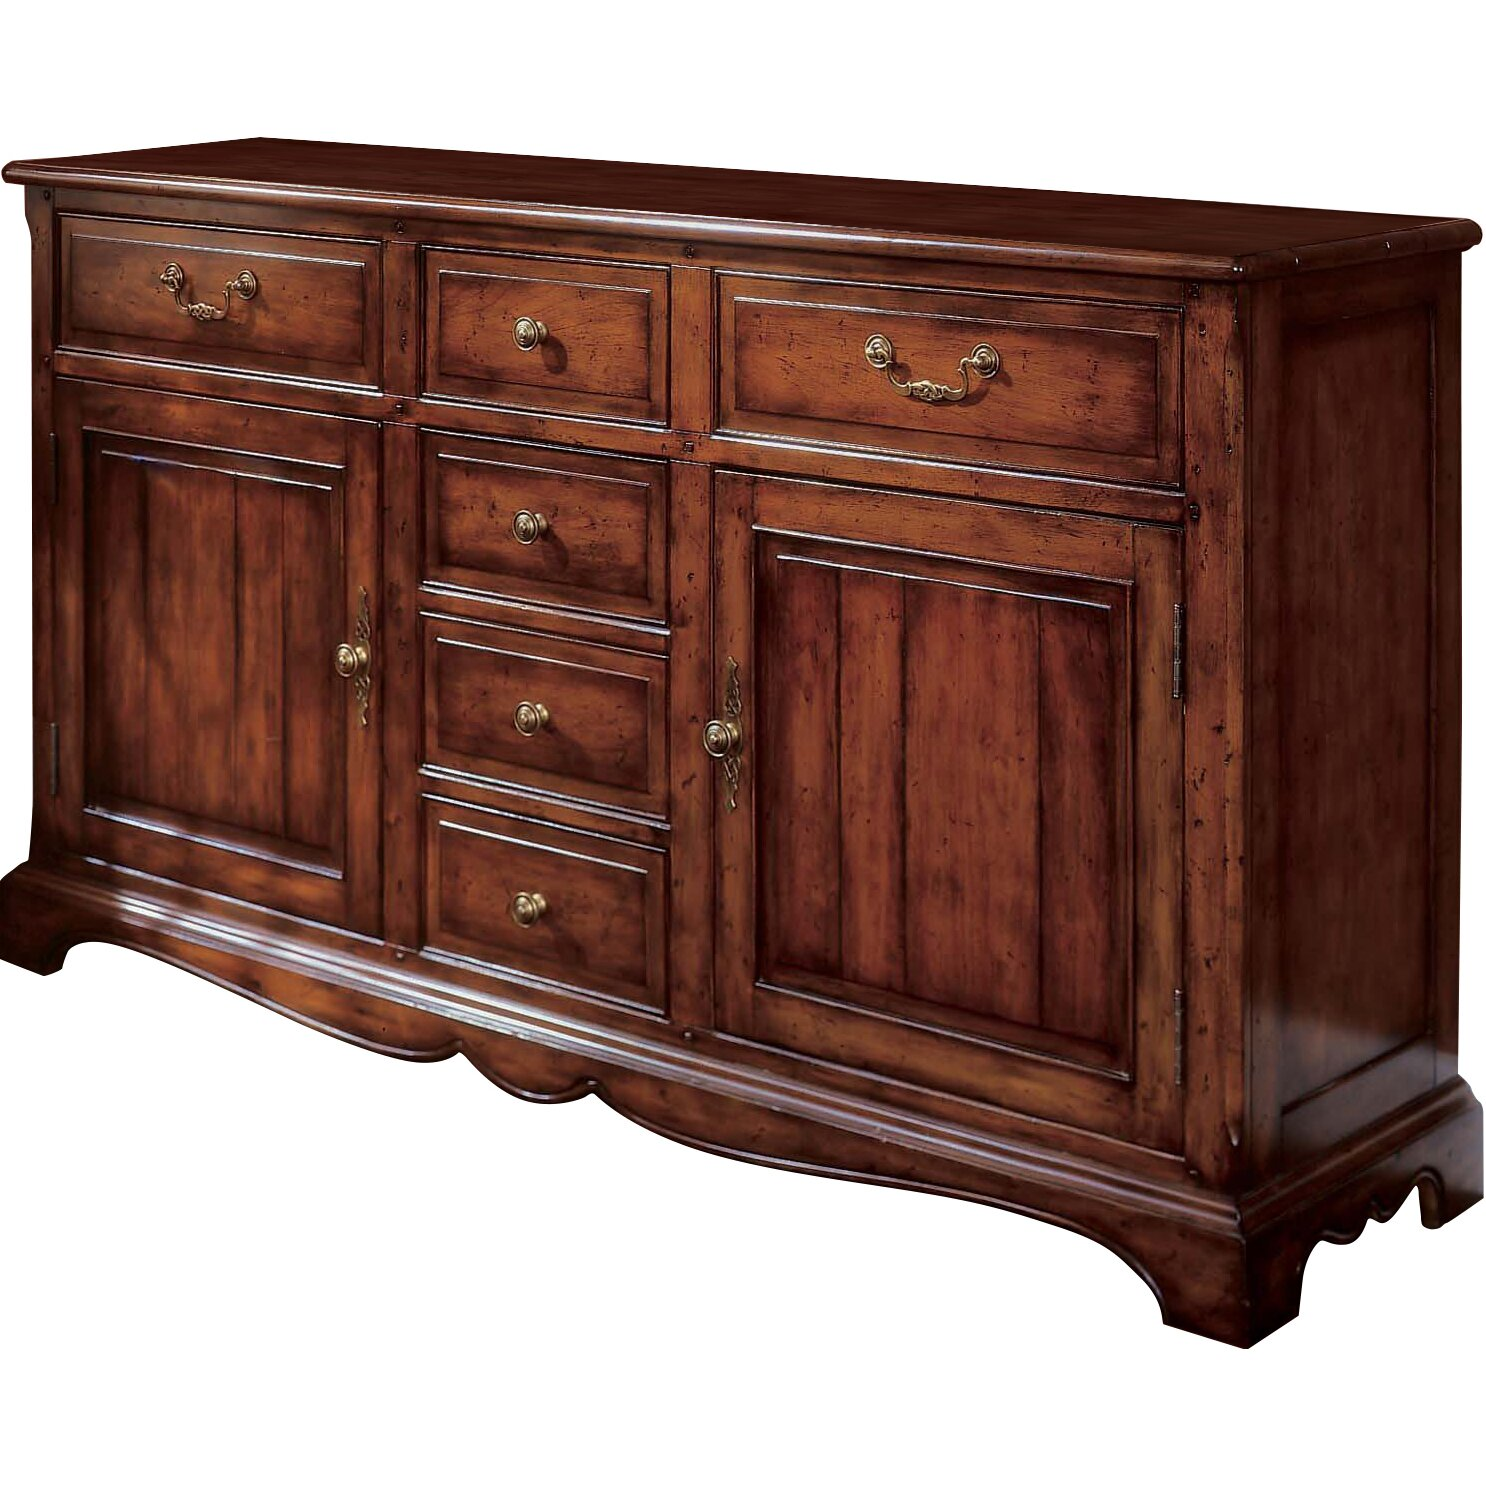 Hooker furniture waverly place buffet reviews wayfair for Place furniture